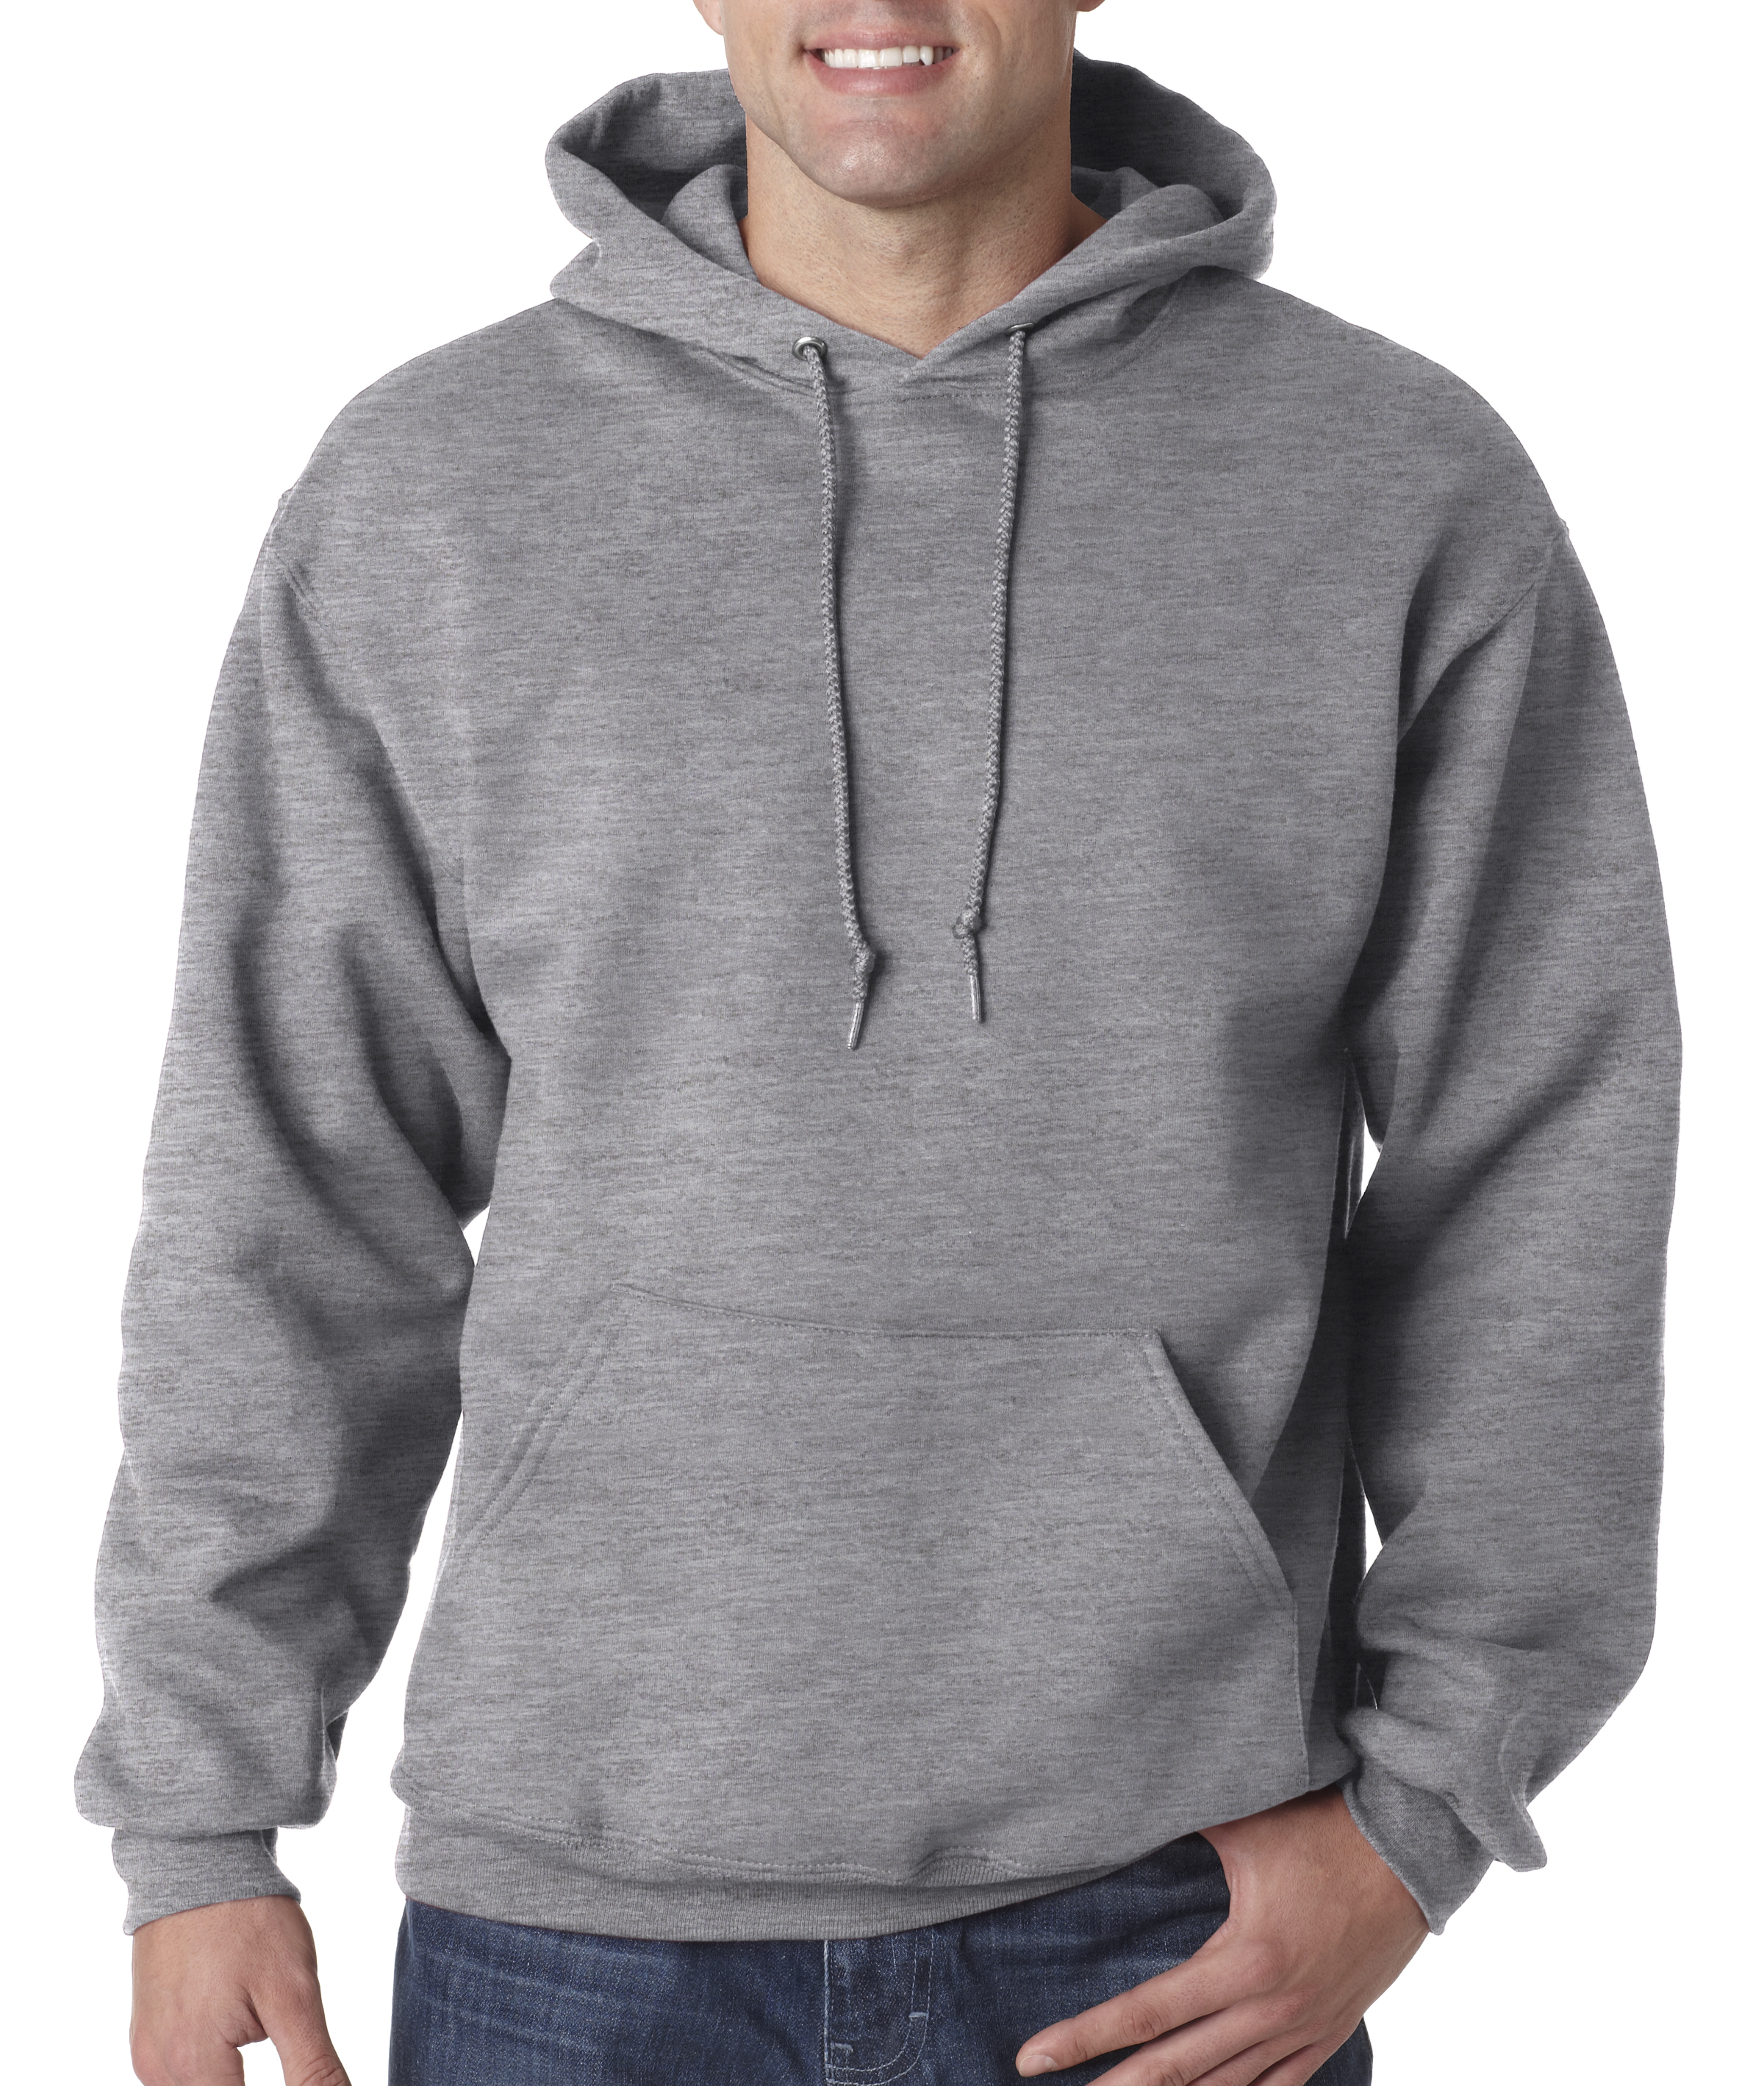 Jerzees SuperSweats Hooded Sweatshirt